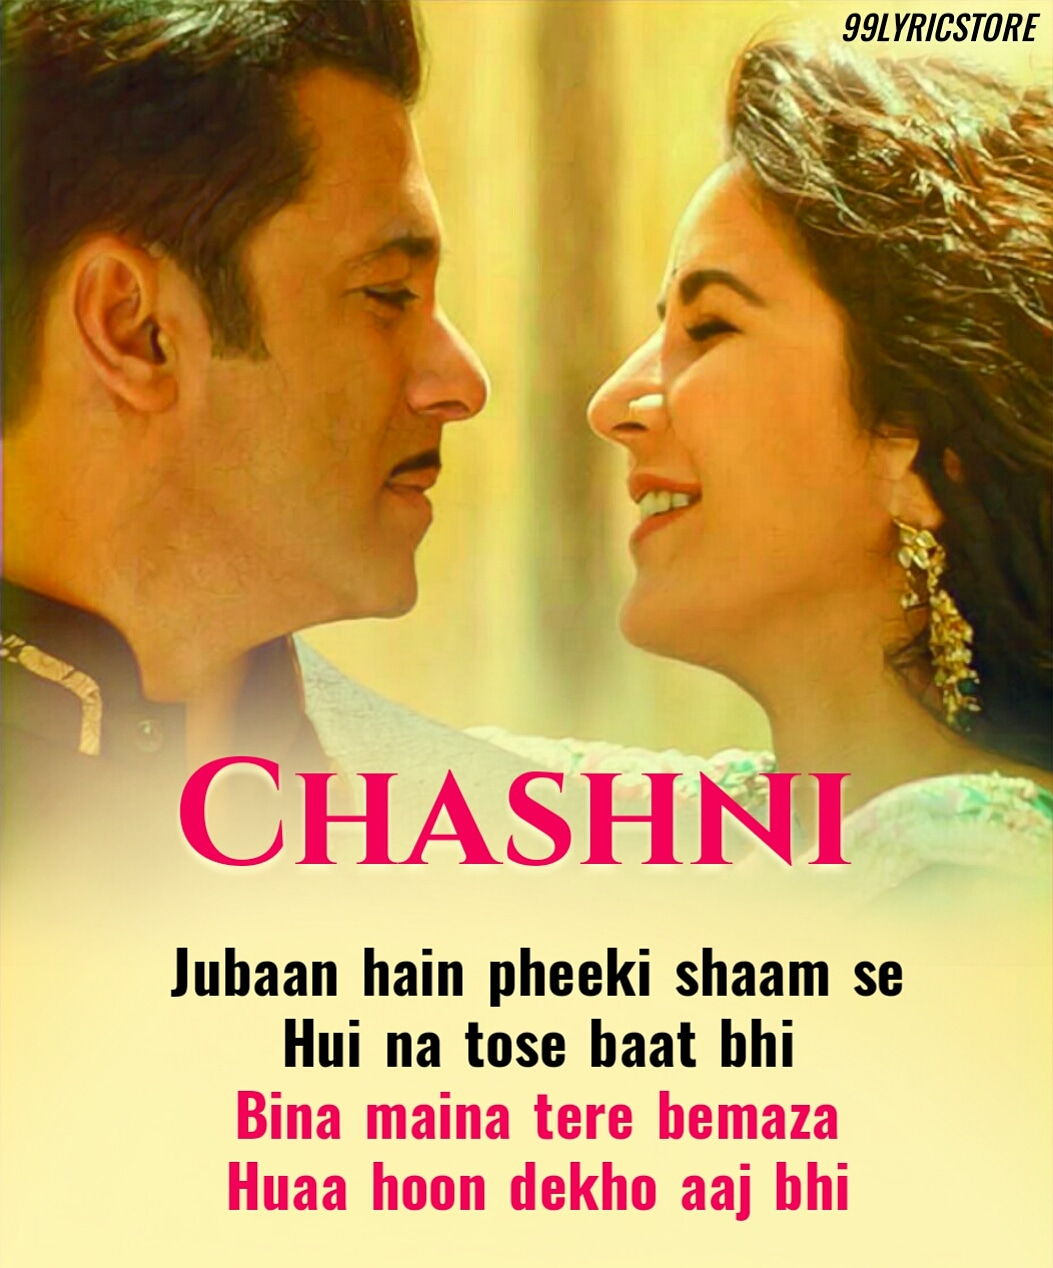 Chashni Hindi song lyrics from movie Bharat Salman Khan & Katrina Kaif